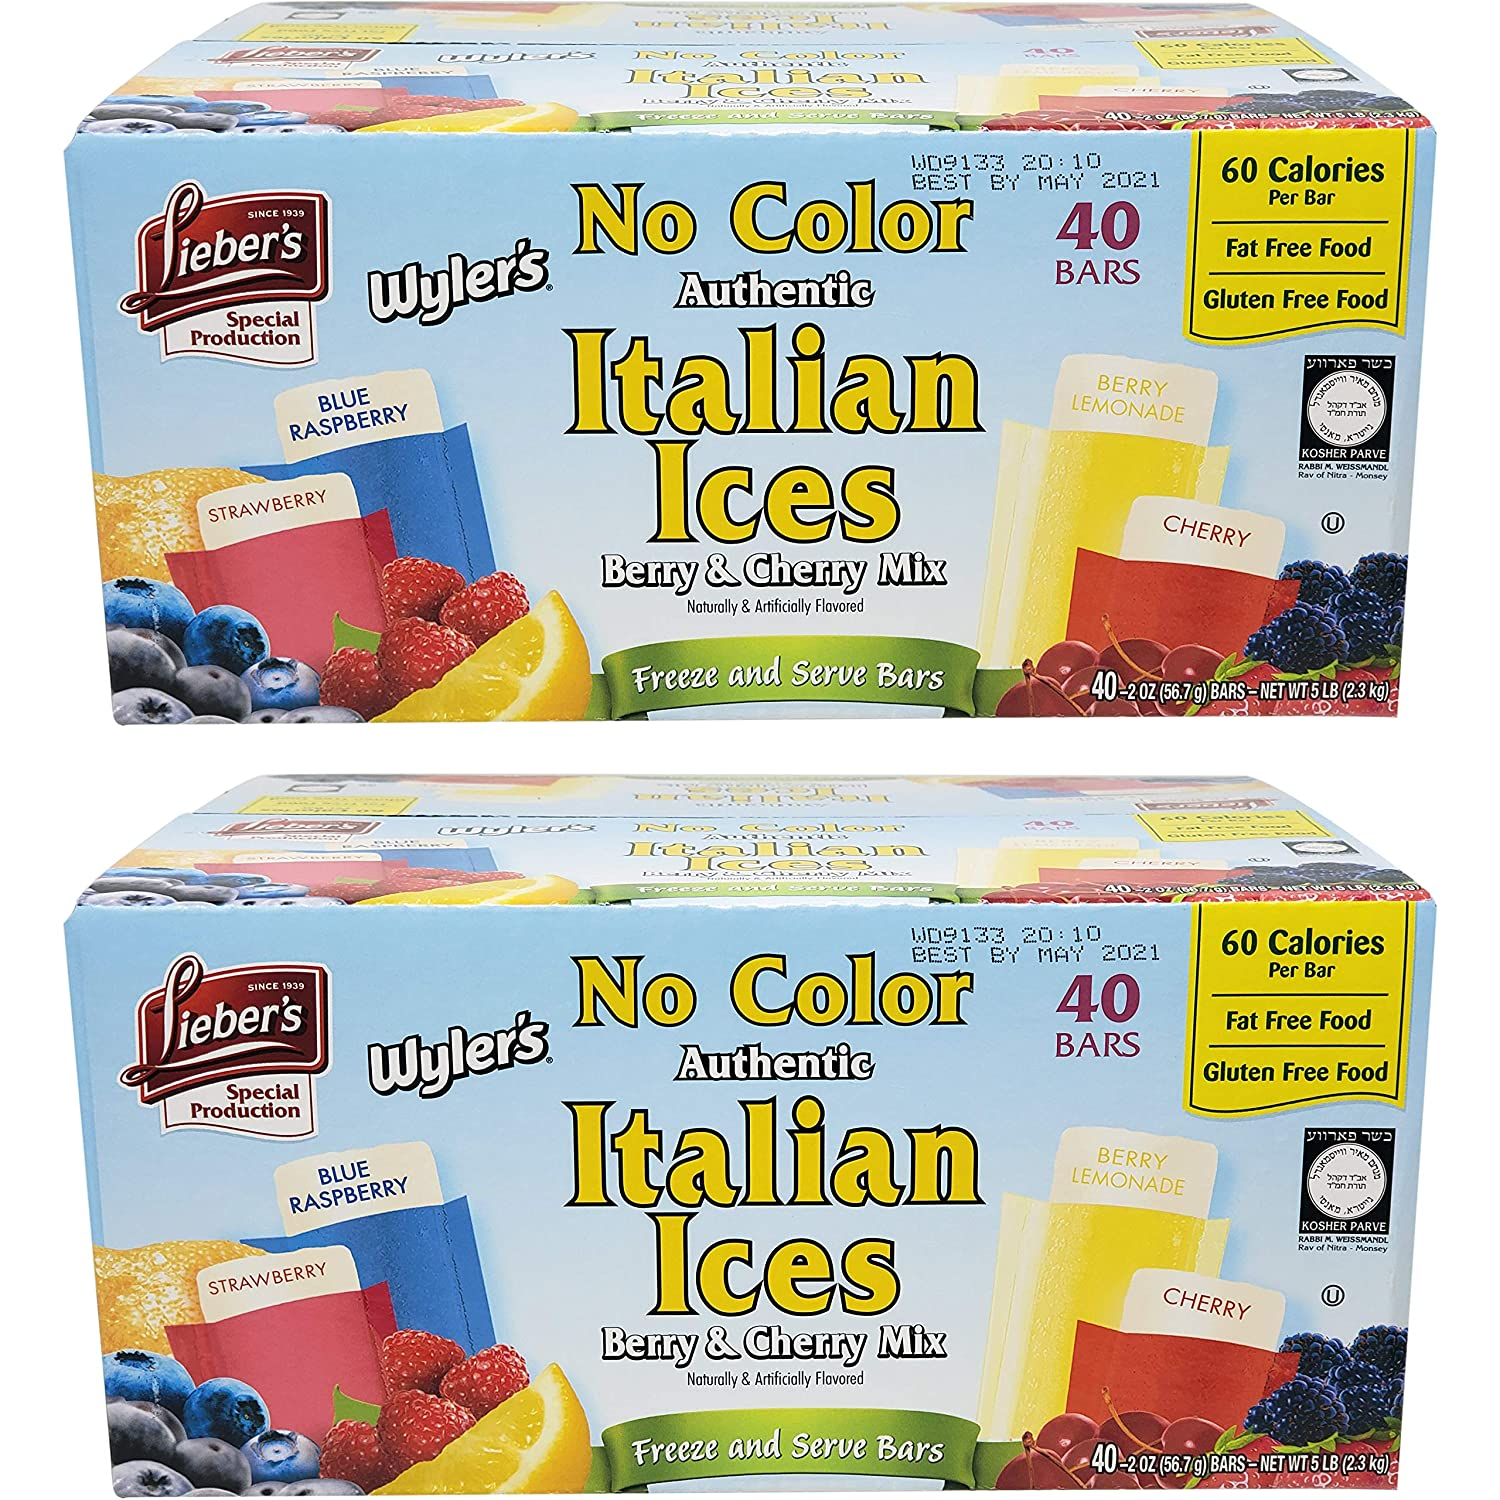 Lieber's Wyler's Italian Ices Berry & Cherry Mix, No Food Coloring, Kosher, Gluten-Free, Fat-Free Italian Ices, 80 Ounce Box (2-Pack)